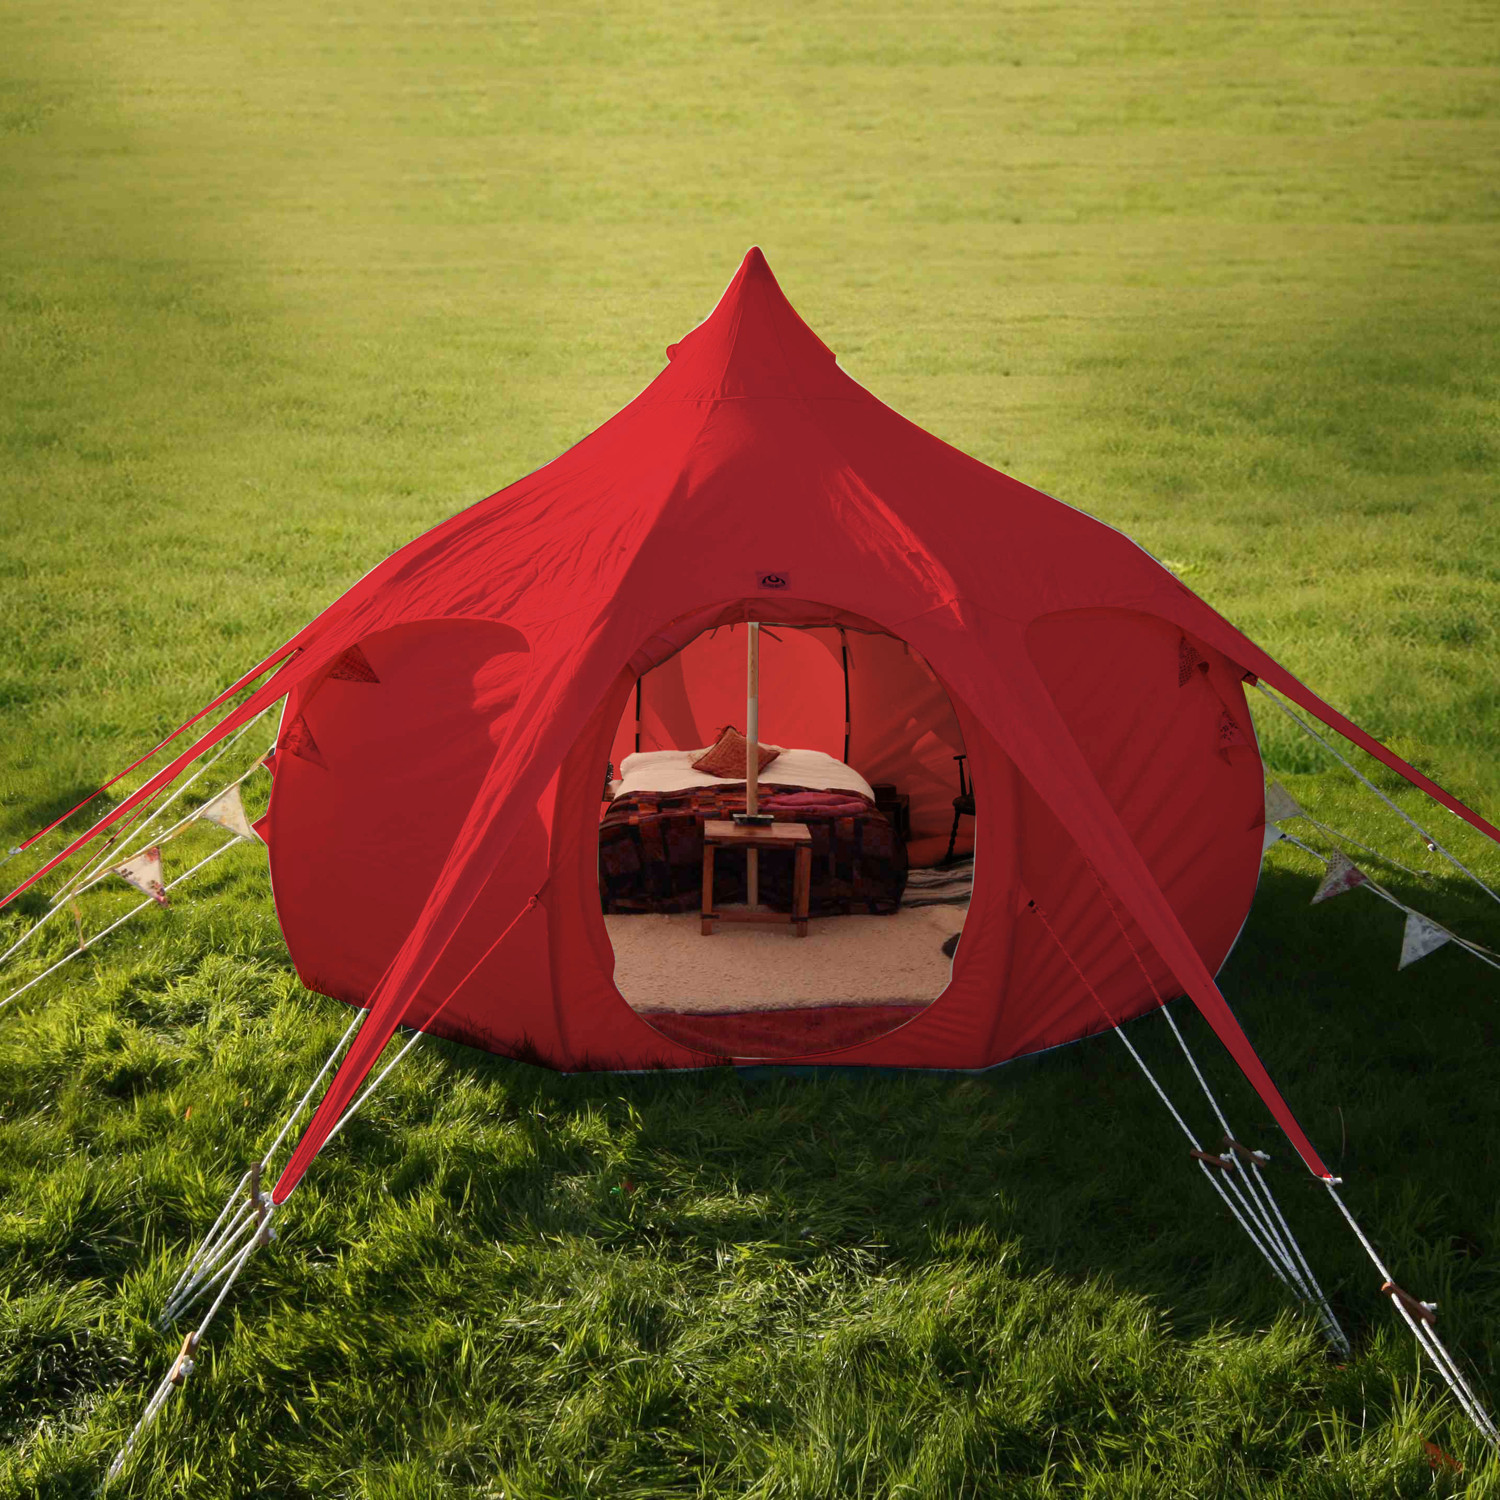 Lotus Belle Limited Edition Red Outback Tent // 16Ft & Lotus Belle Limited Edition Red Outback Tent // 16Ft - Lotus Belle ...